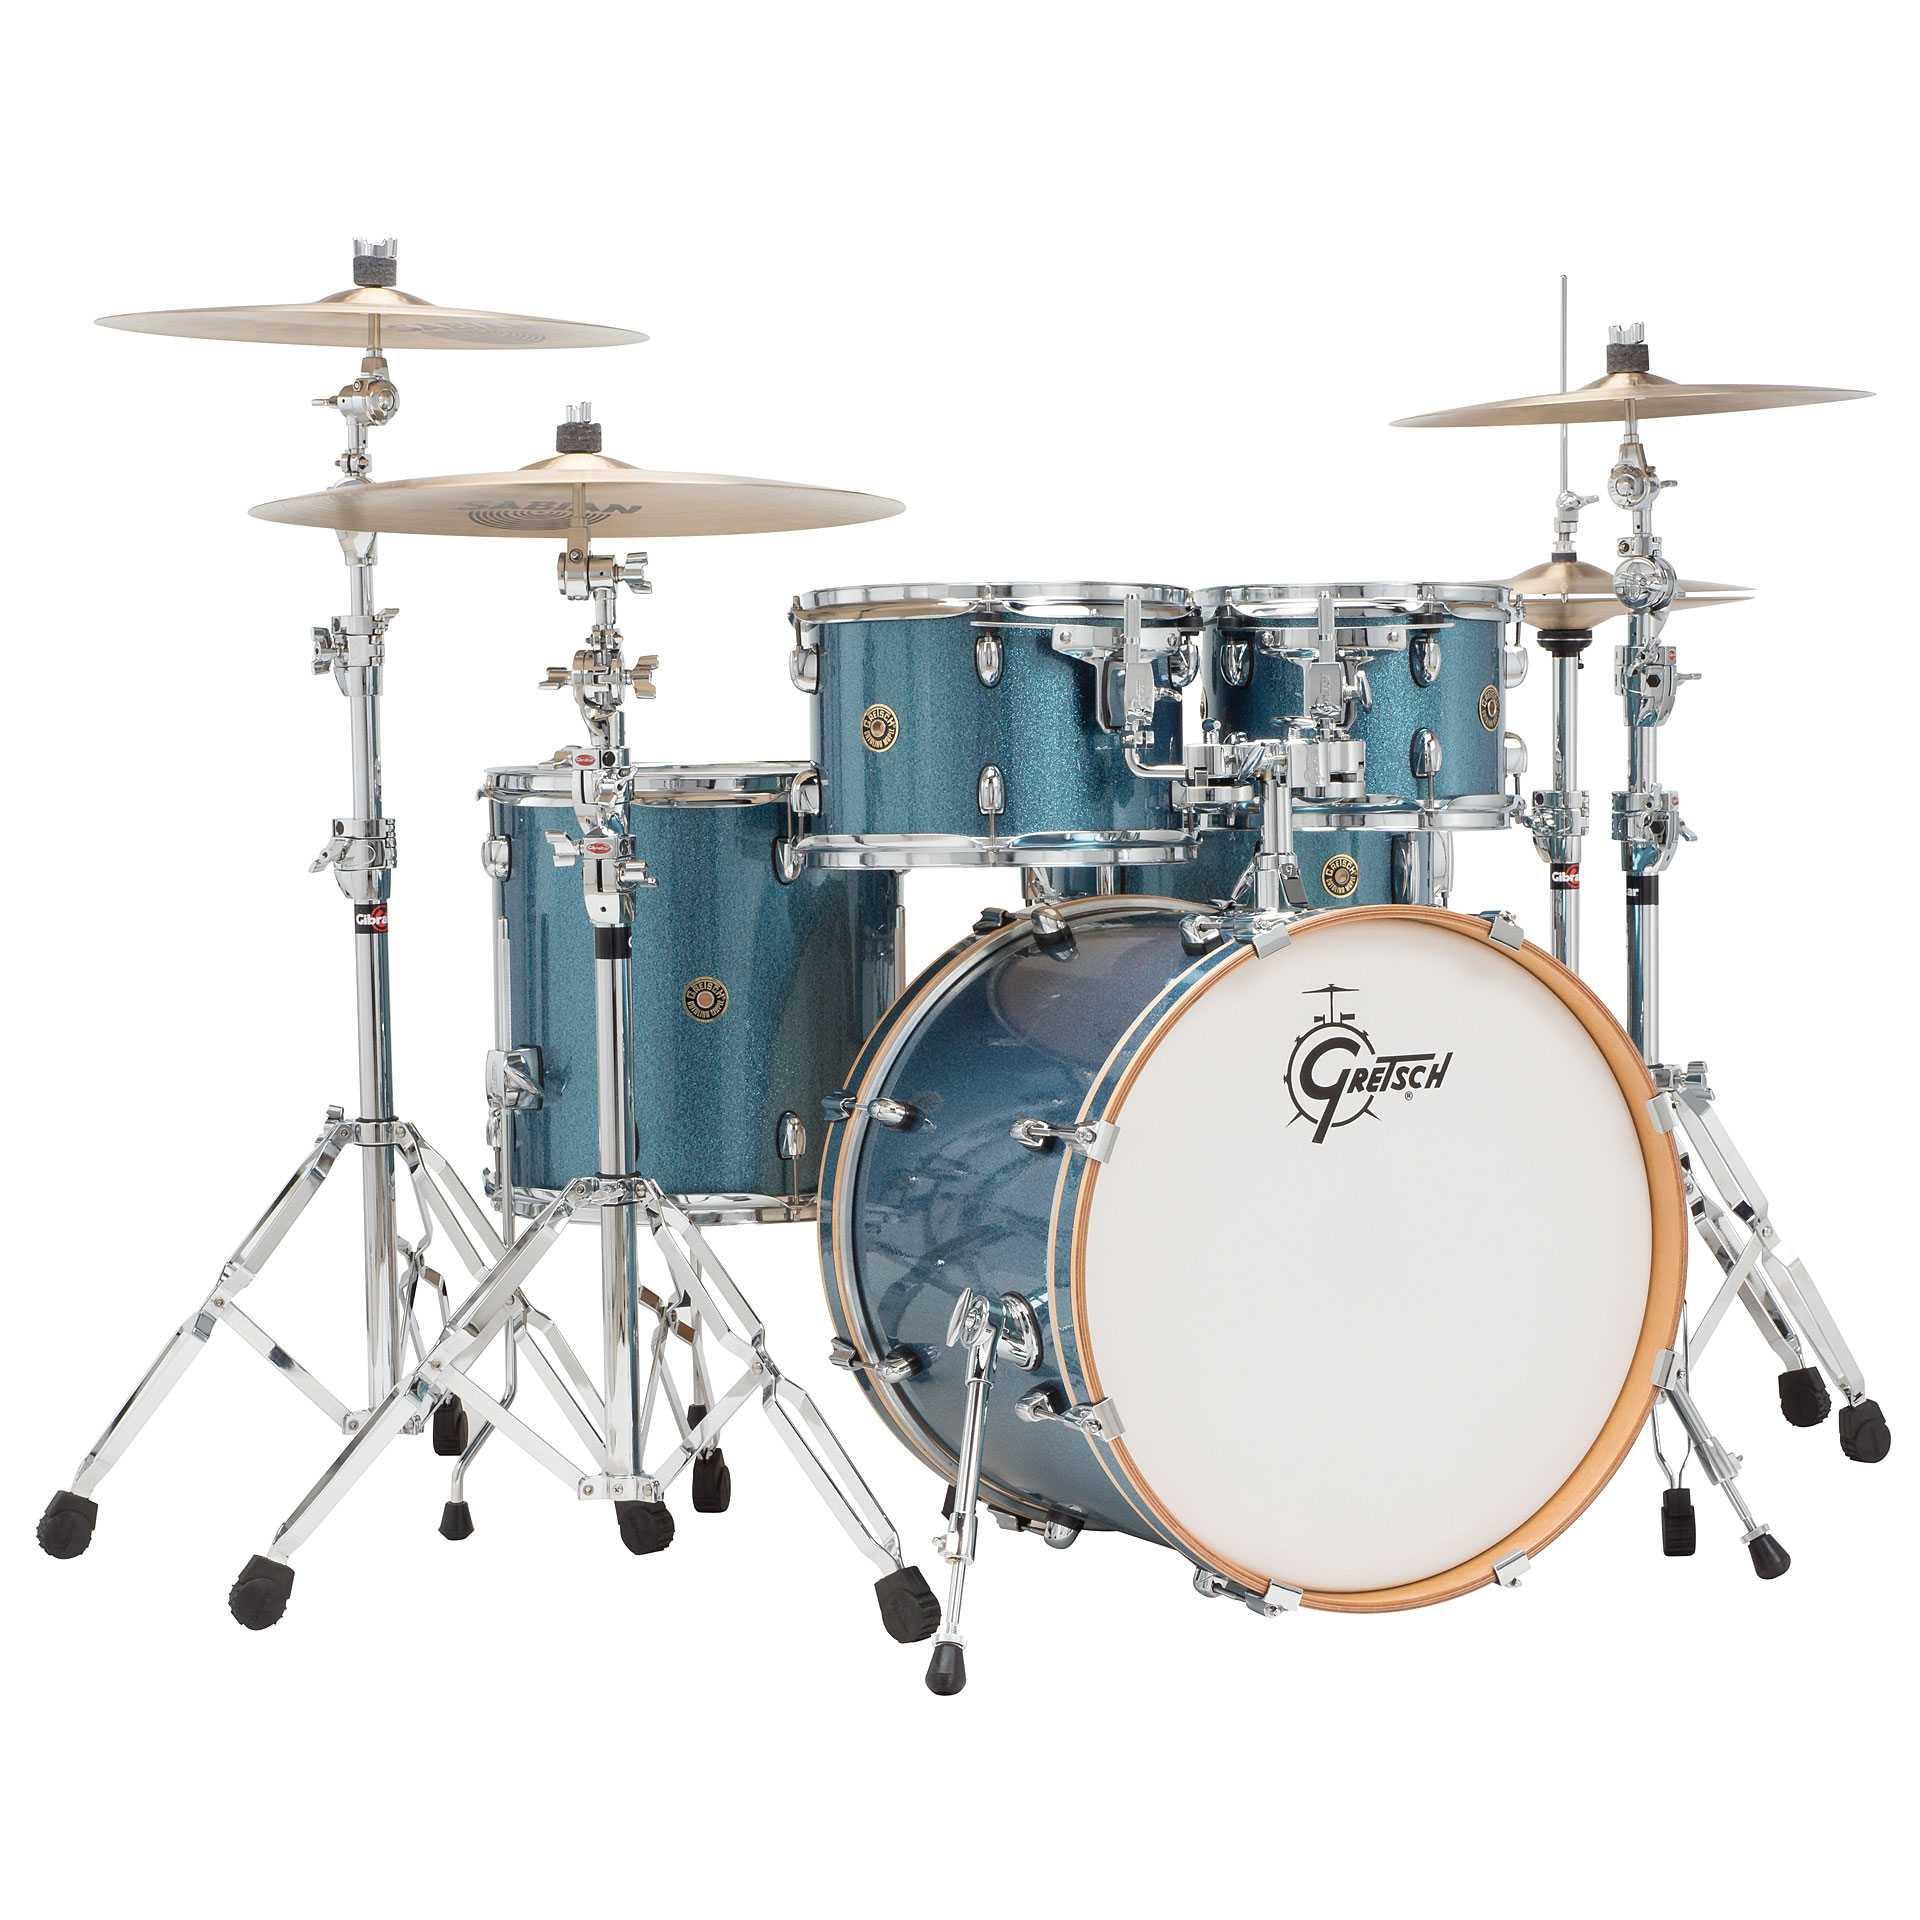 964dcf892ed1 ... Drum Kit Gretsch Drums Catalina Maple CM1-E825-AS (5)